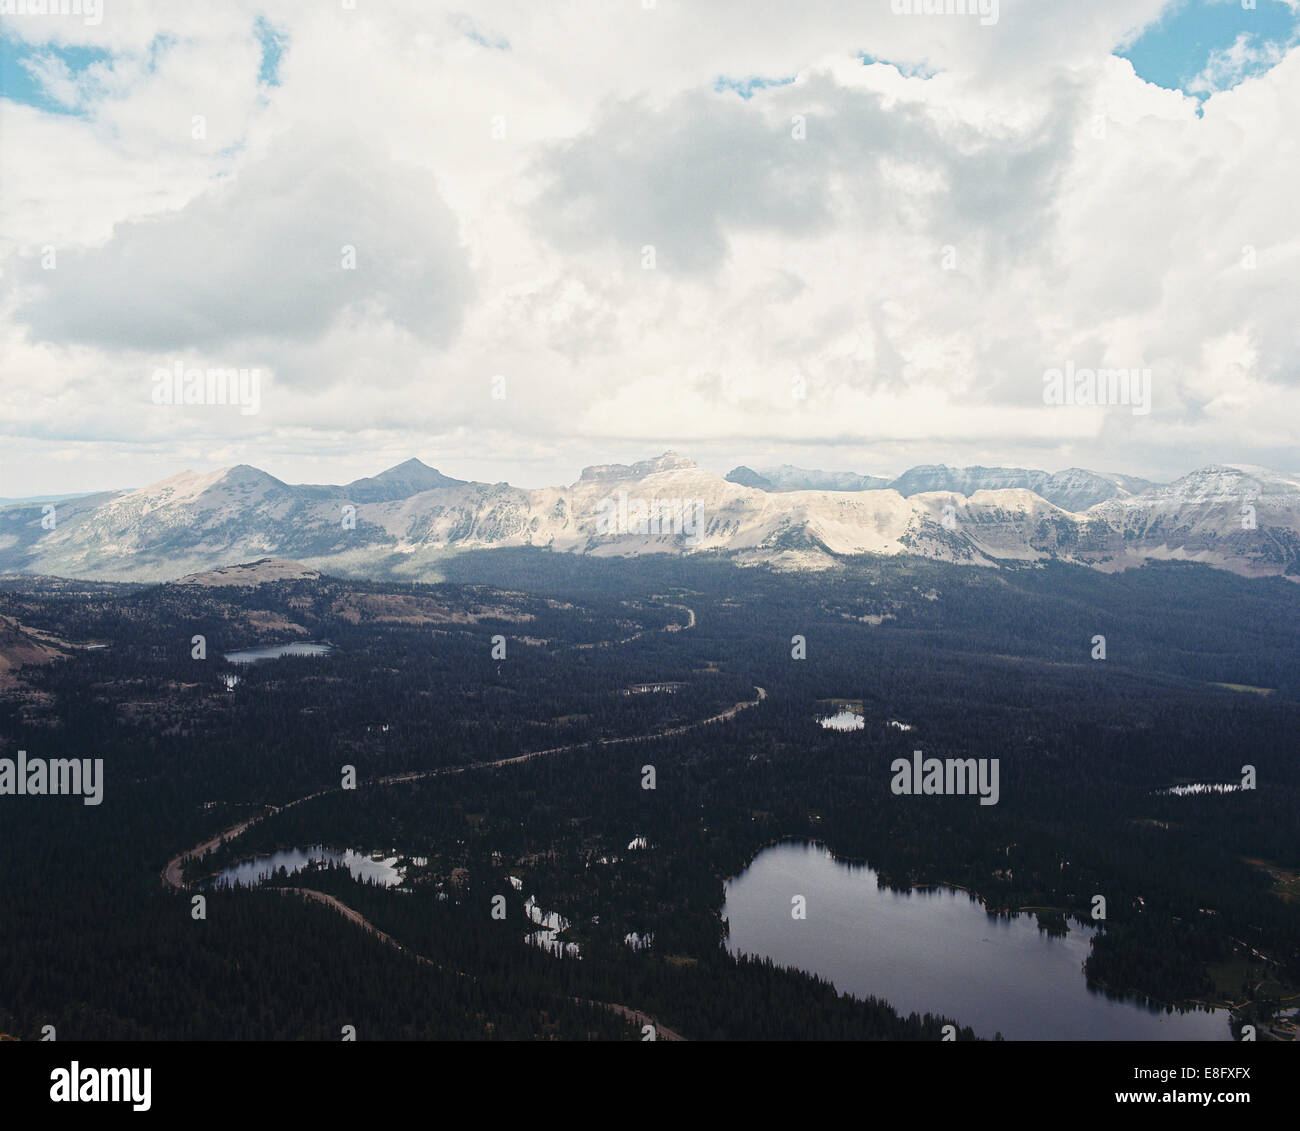 USA, Utah, Aerial view of Uinta National Forest and Mirror Lake from atop of Bald Mountain - Stock Image